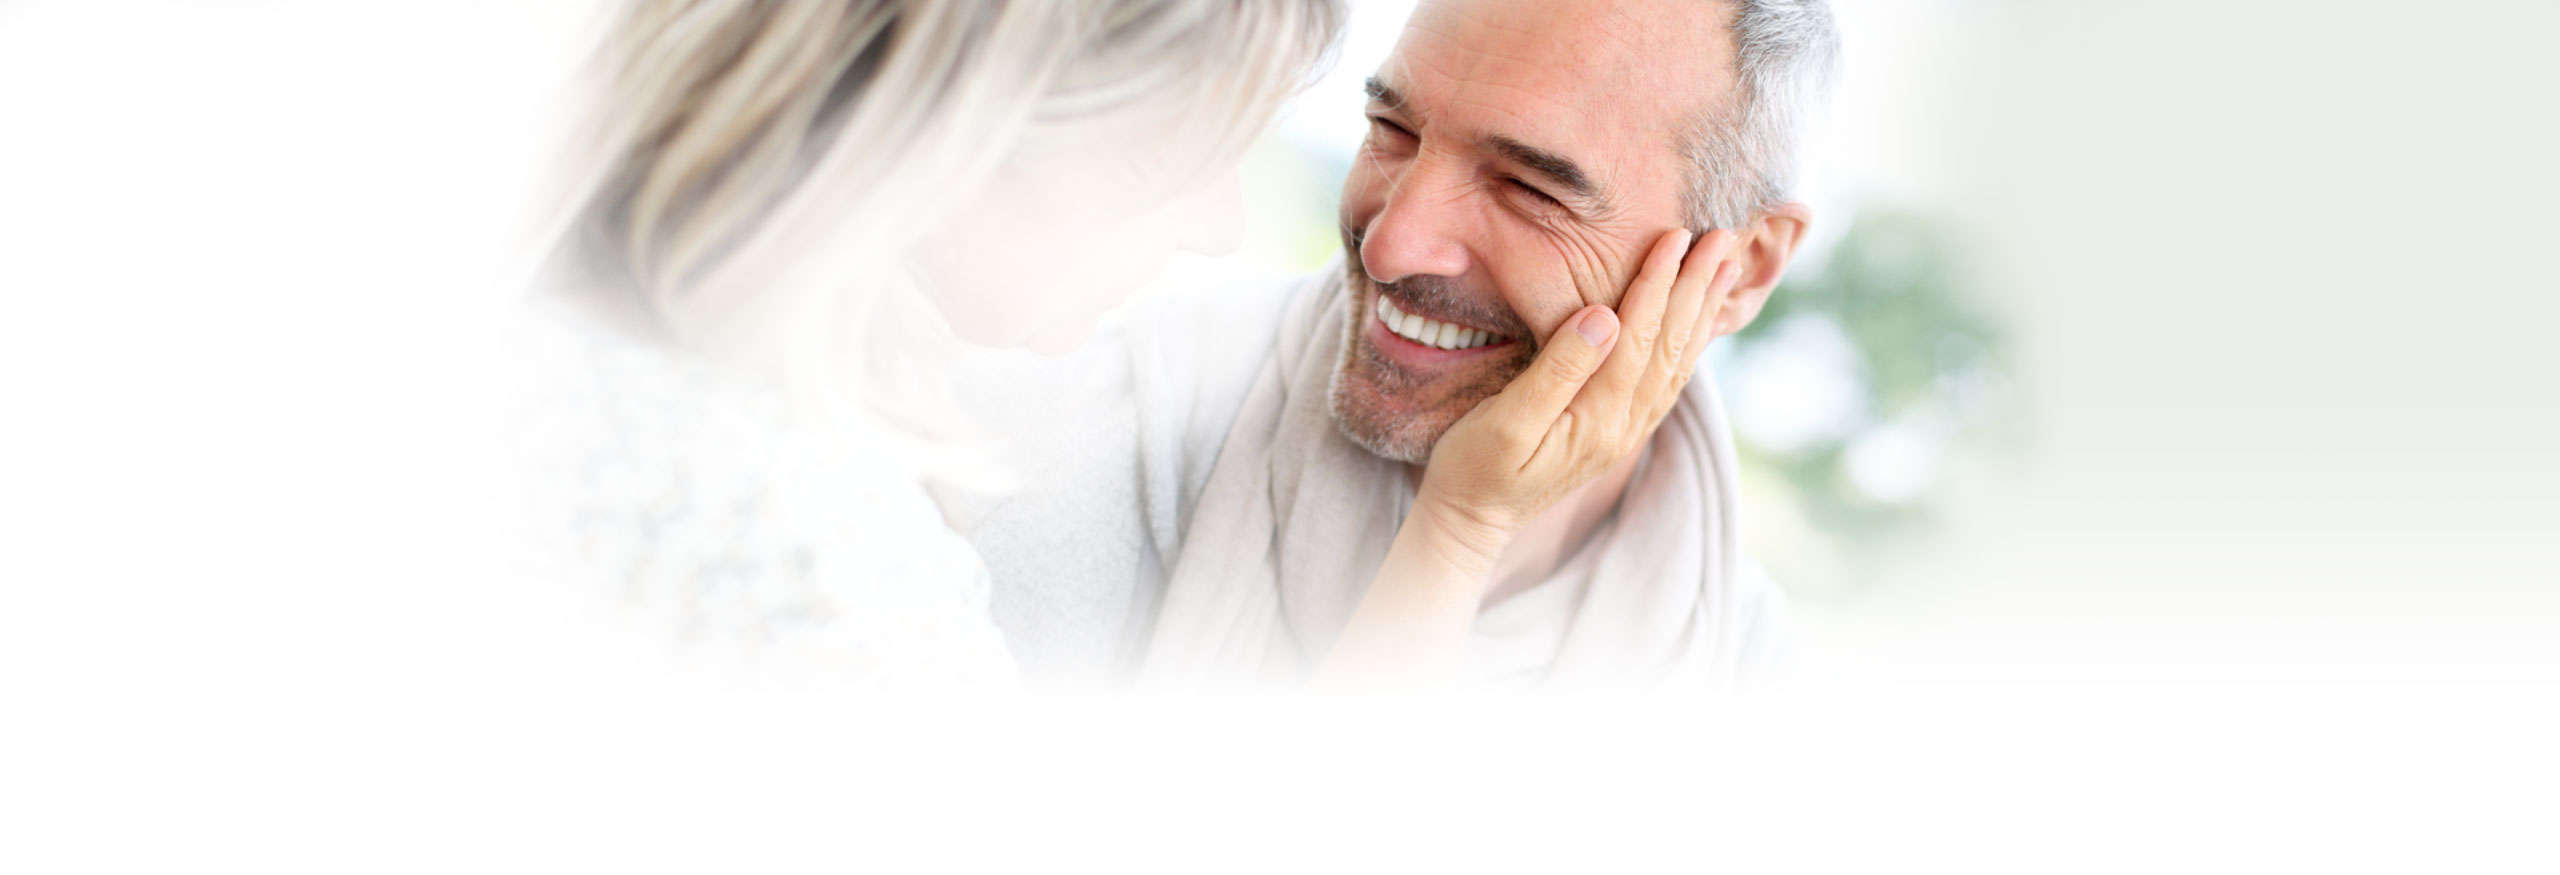 Dental implants in London at our clinics in East Finchley and Swiss Cottage